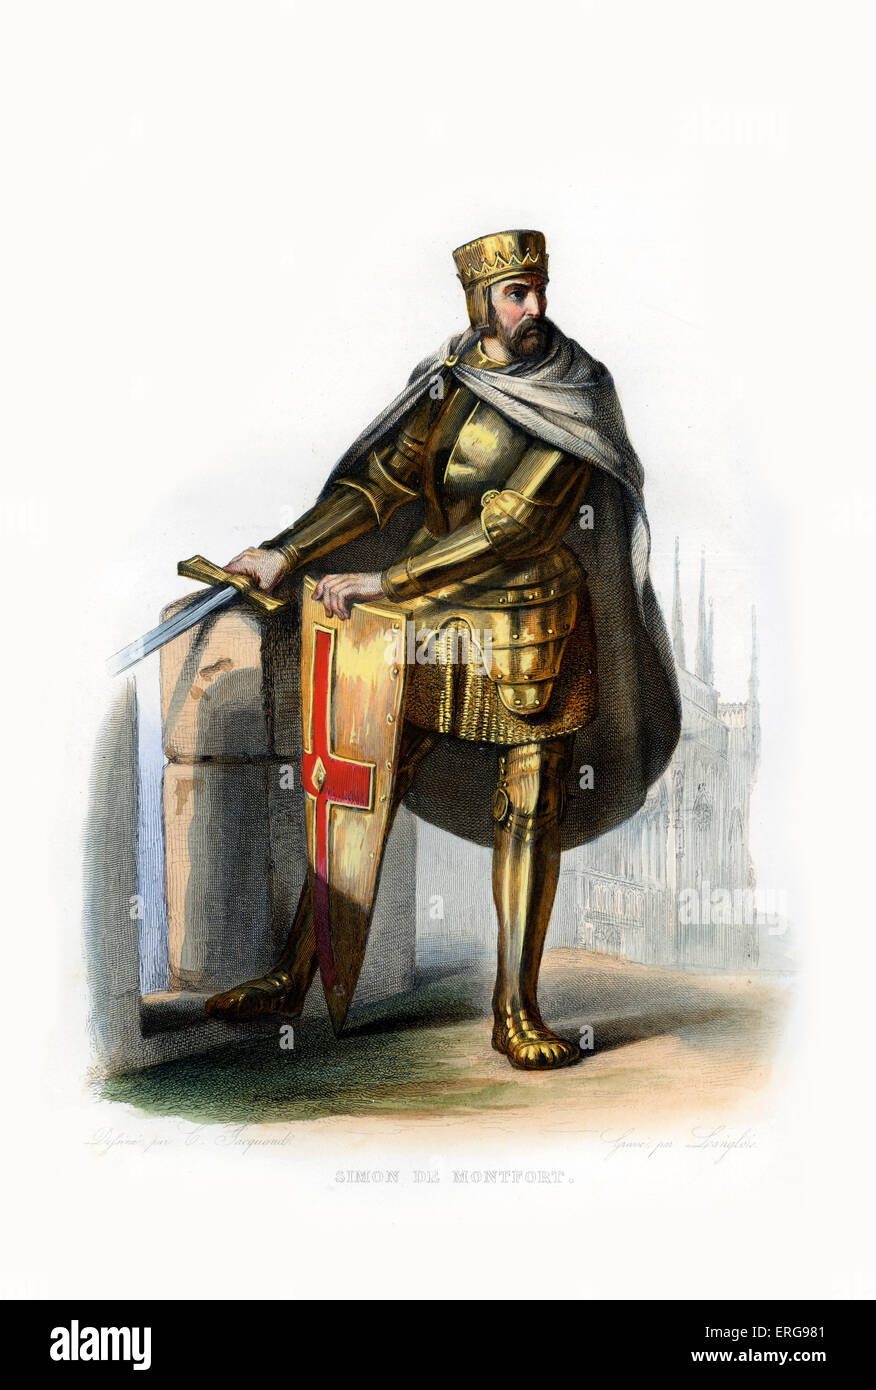 Simon IV de Montfort. French nobleman, took part in the Fourth Crusade (1202–1204) and was a prominent leader of - Stock Image